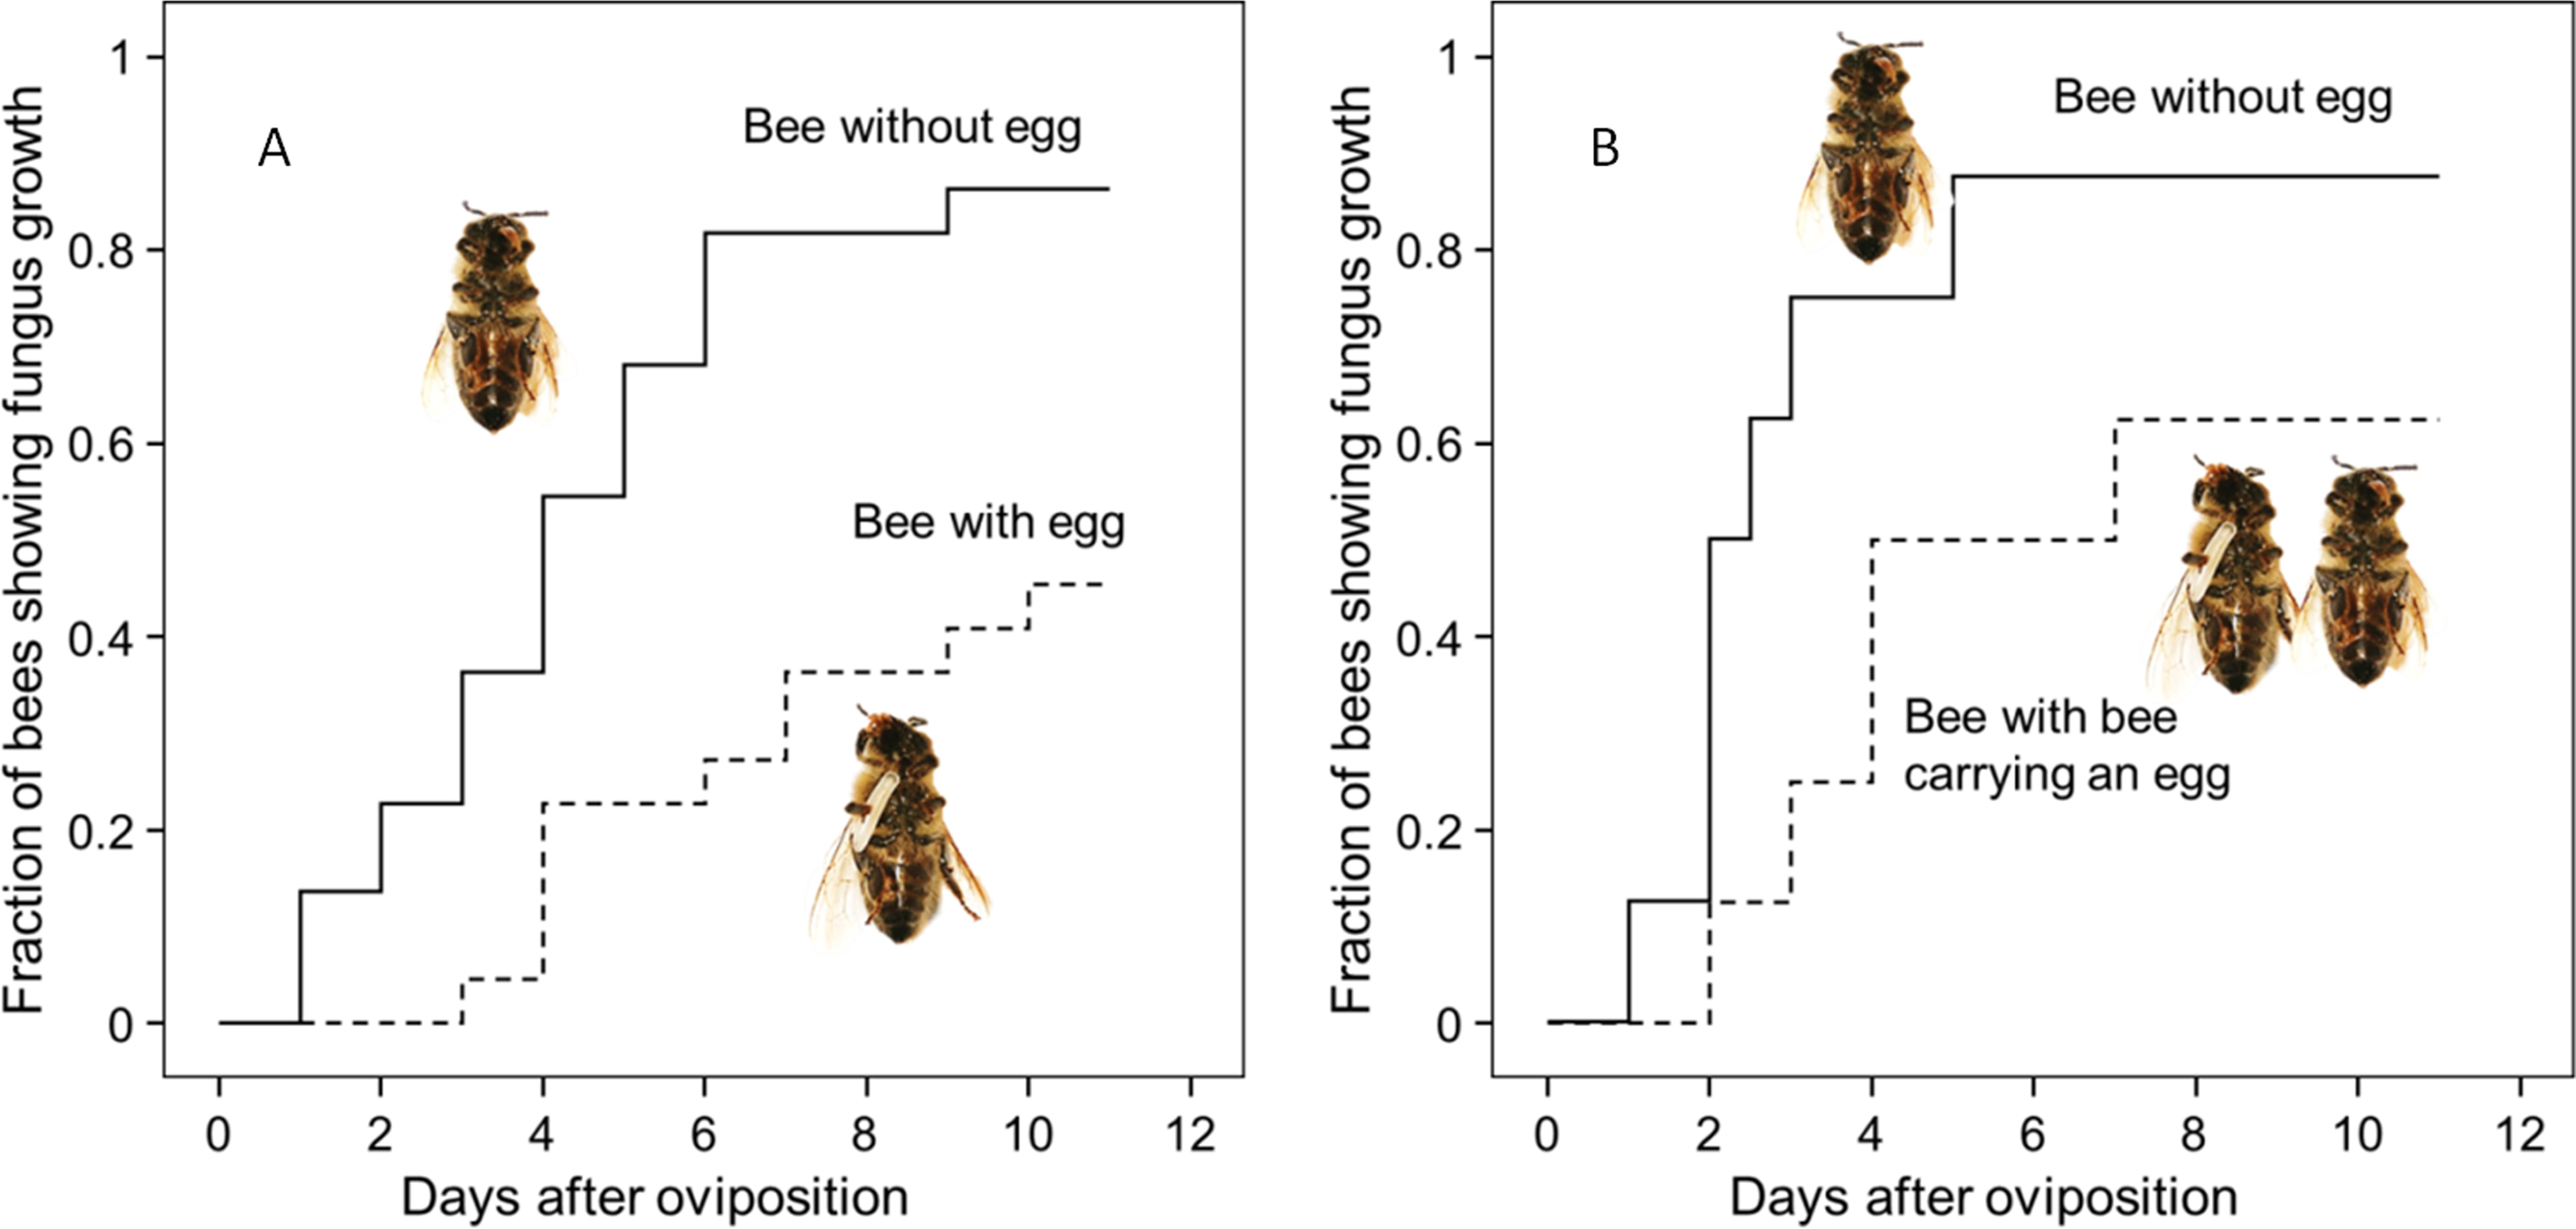 Nitric Oxide Radicals Are Emitted By Wasp Eggs To Kill Mold Fungi Elife